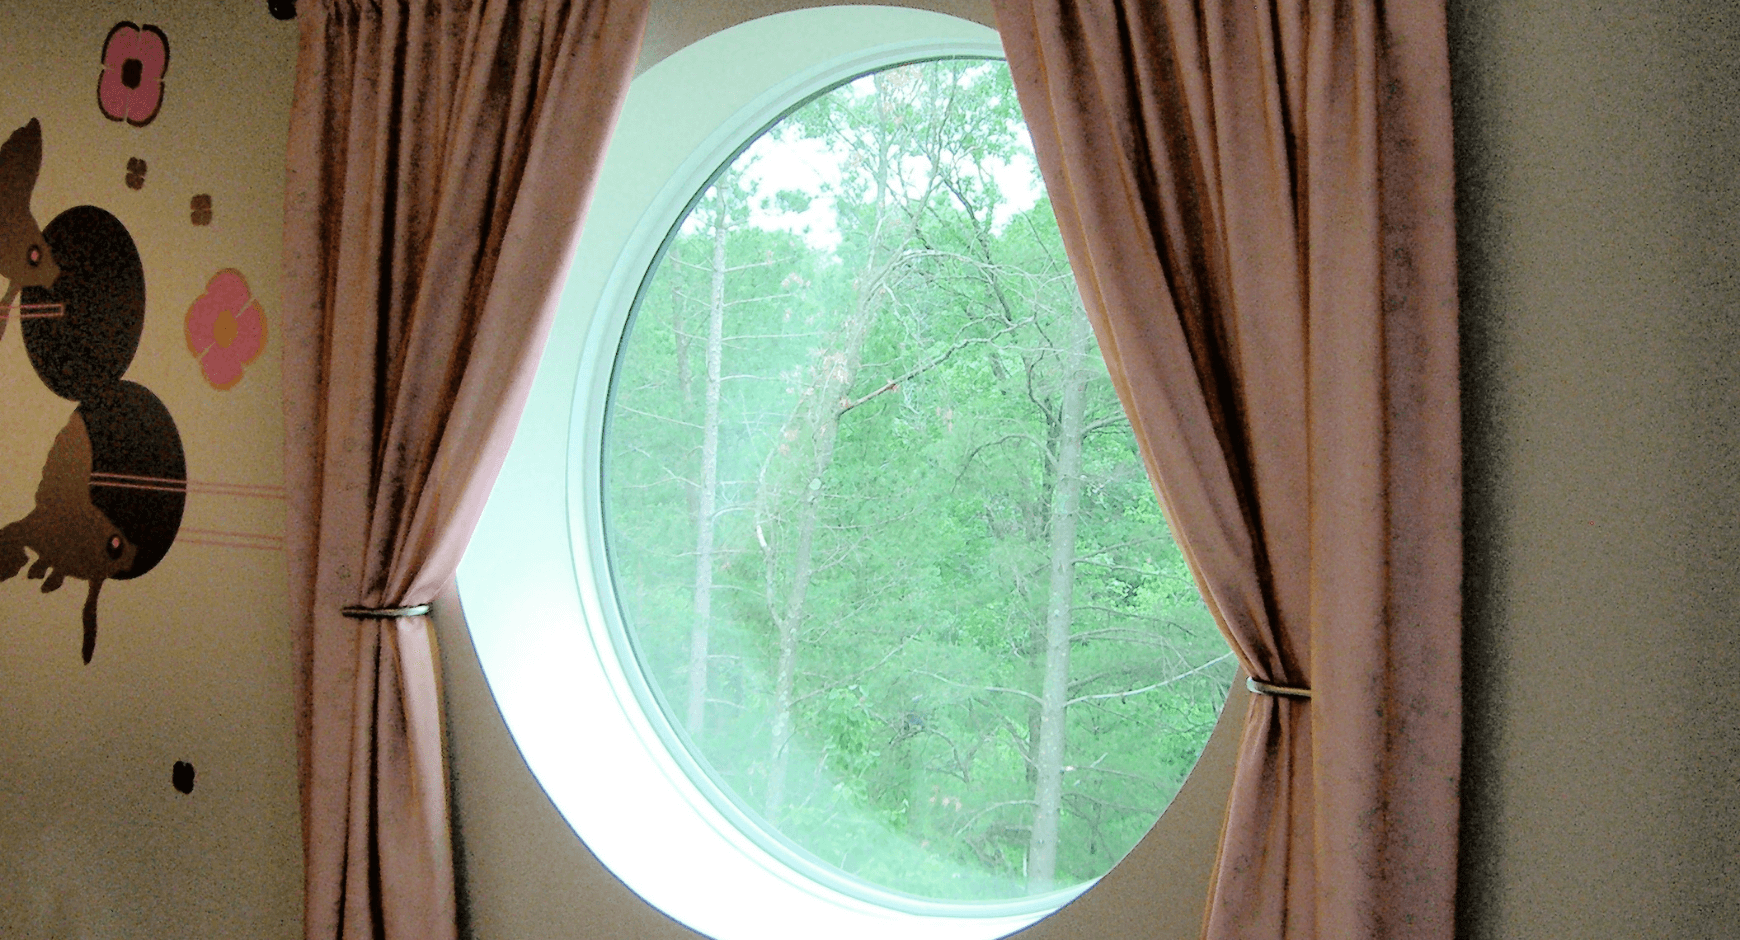 Image of a small window